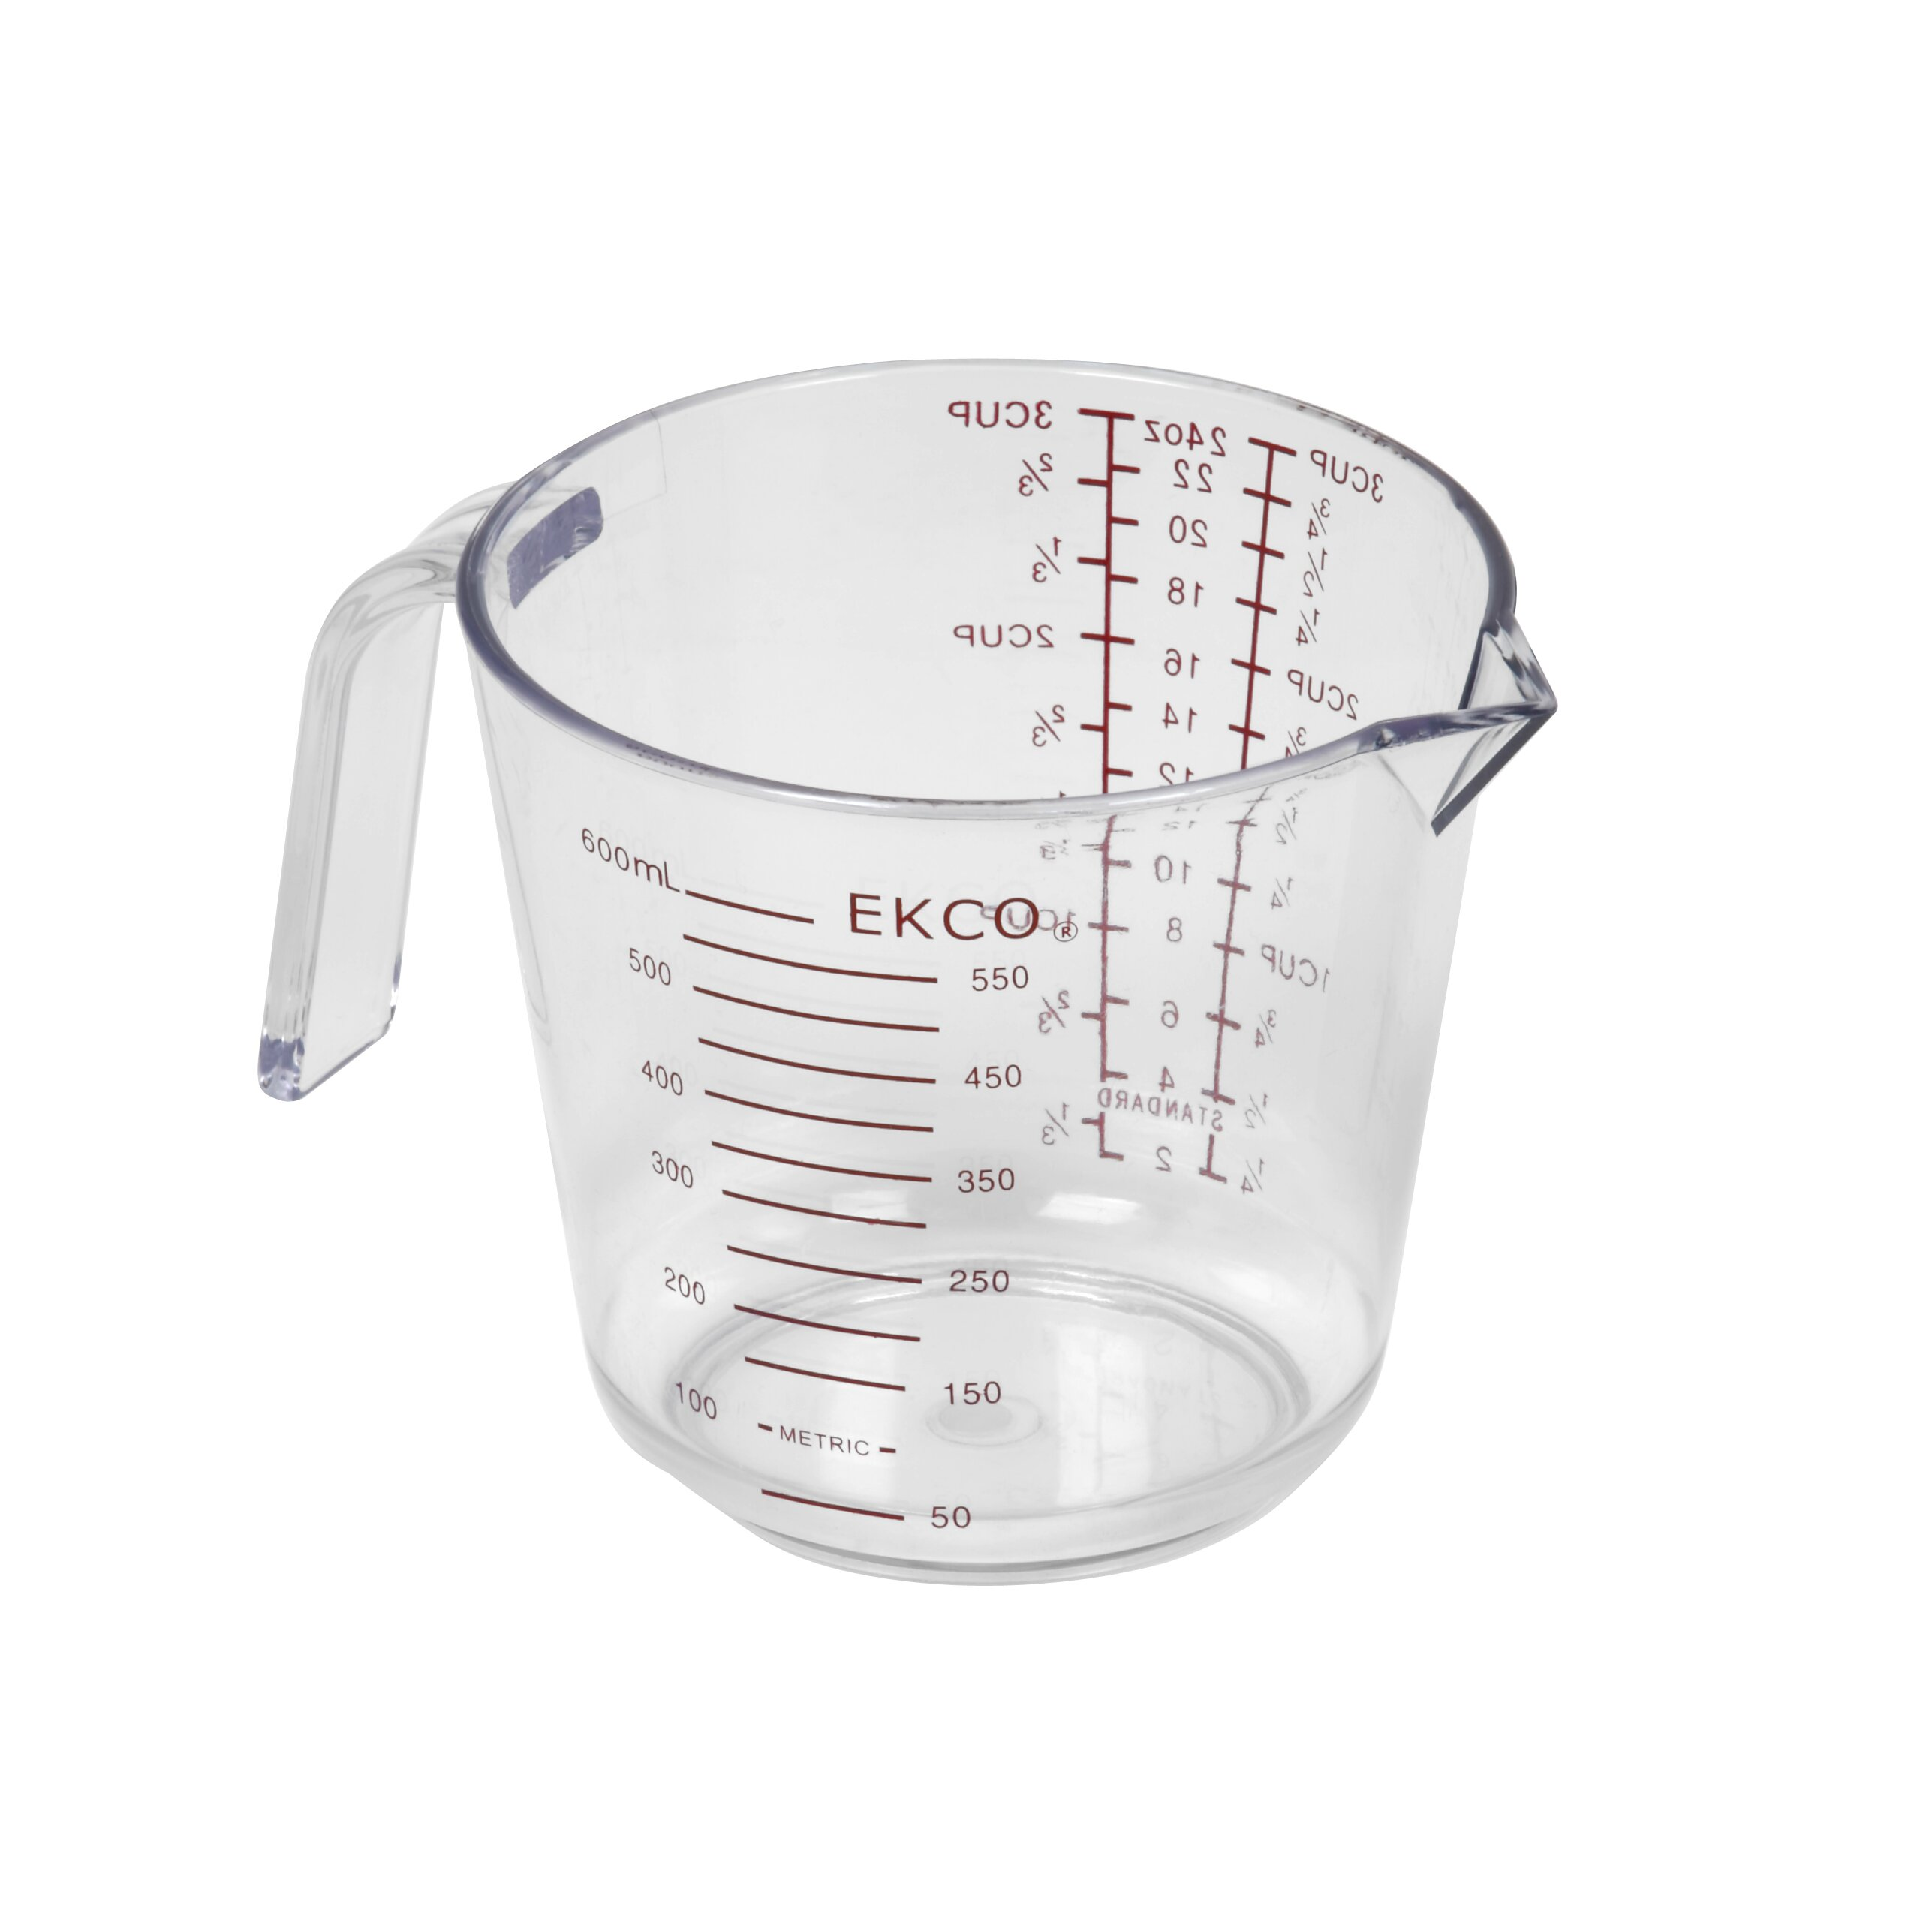 Decorative Measuring Spoons And Cups Ekco 3 Cup Plastic Measuring Cup Reviews Wayfair